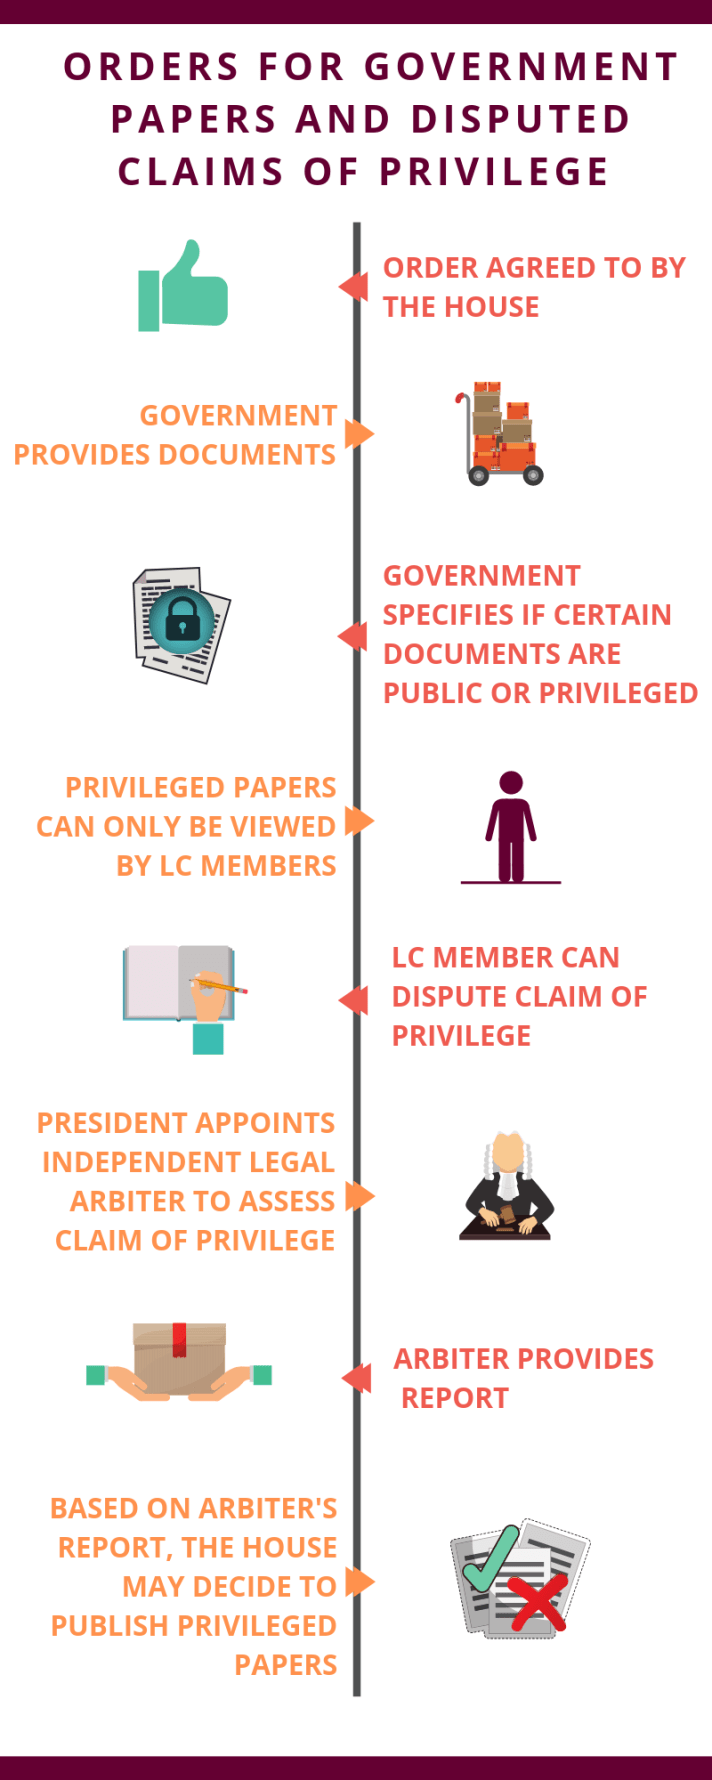 INFO GRAPHIC FOR DISPUTED CLAIMS OF PRIVILEGE